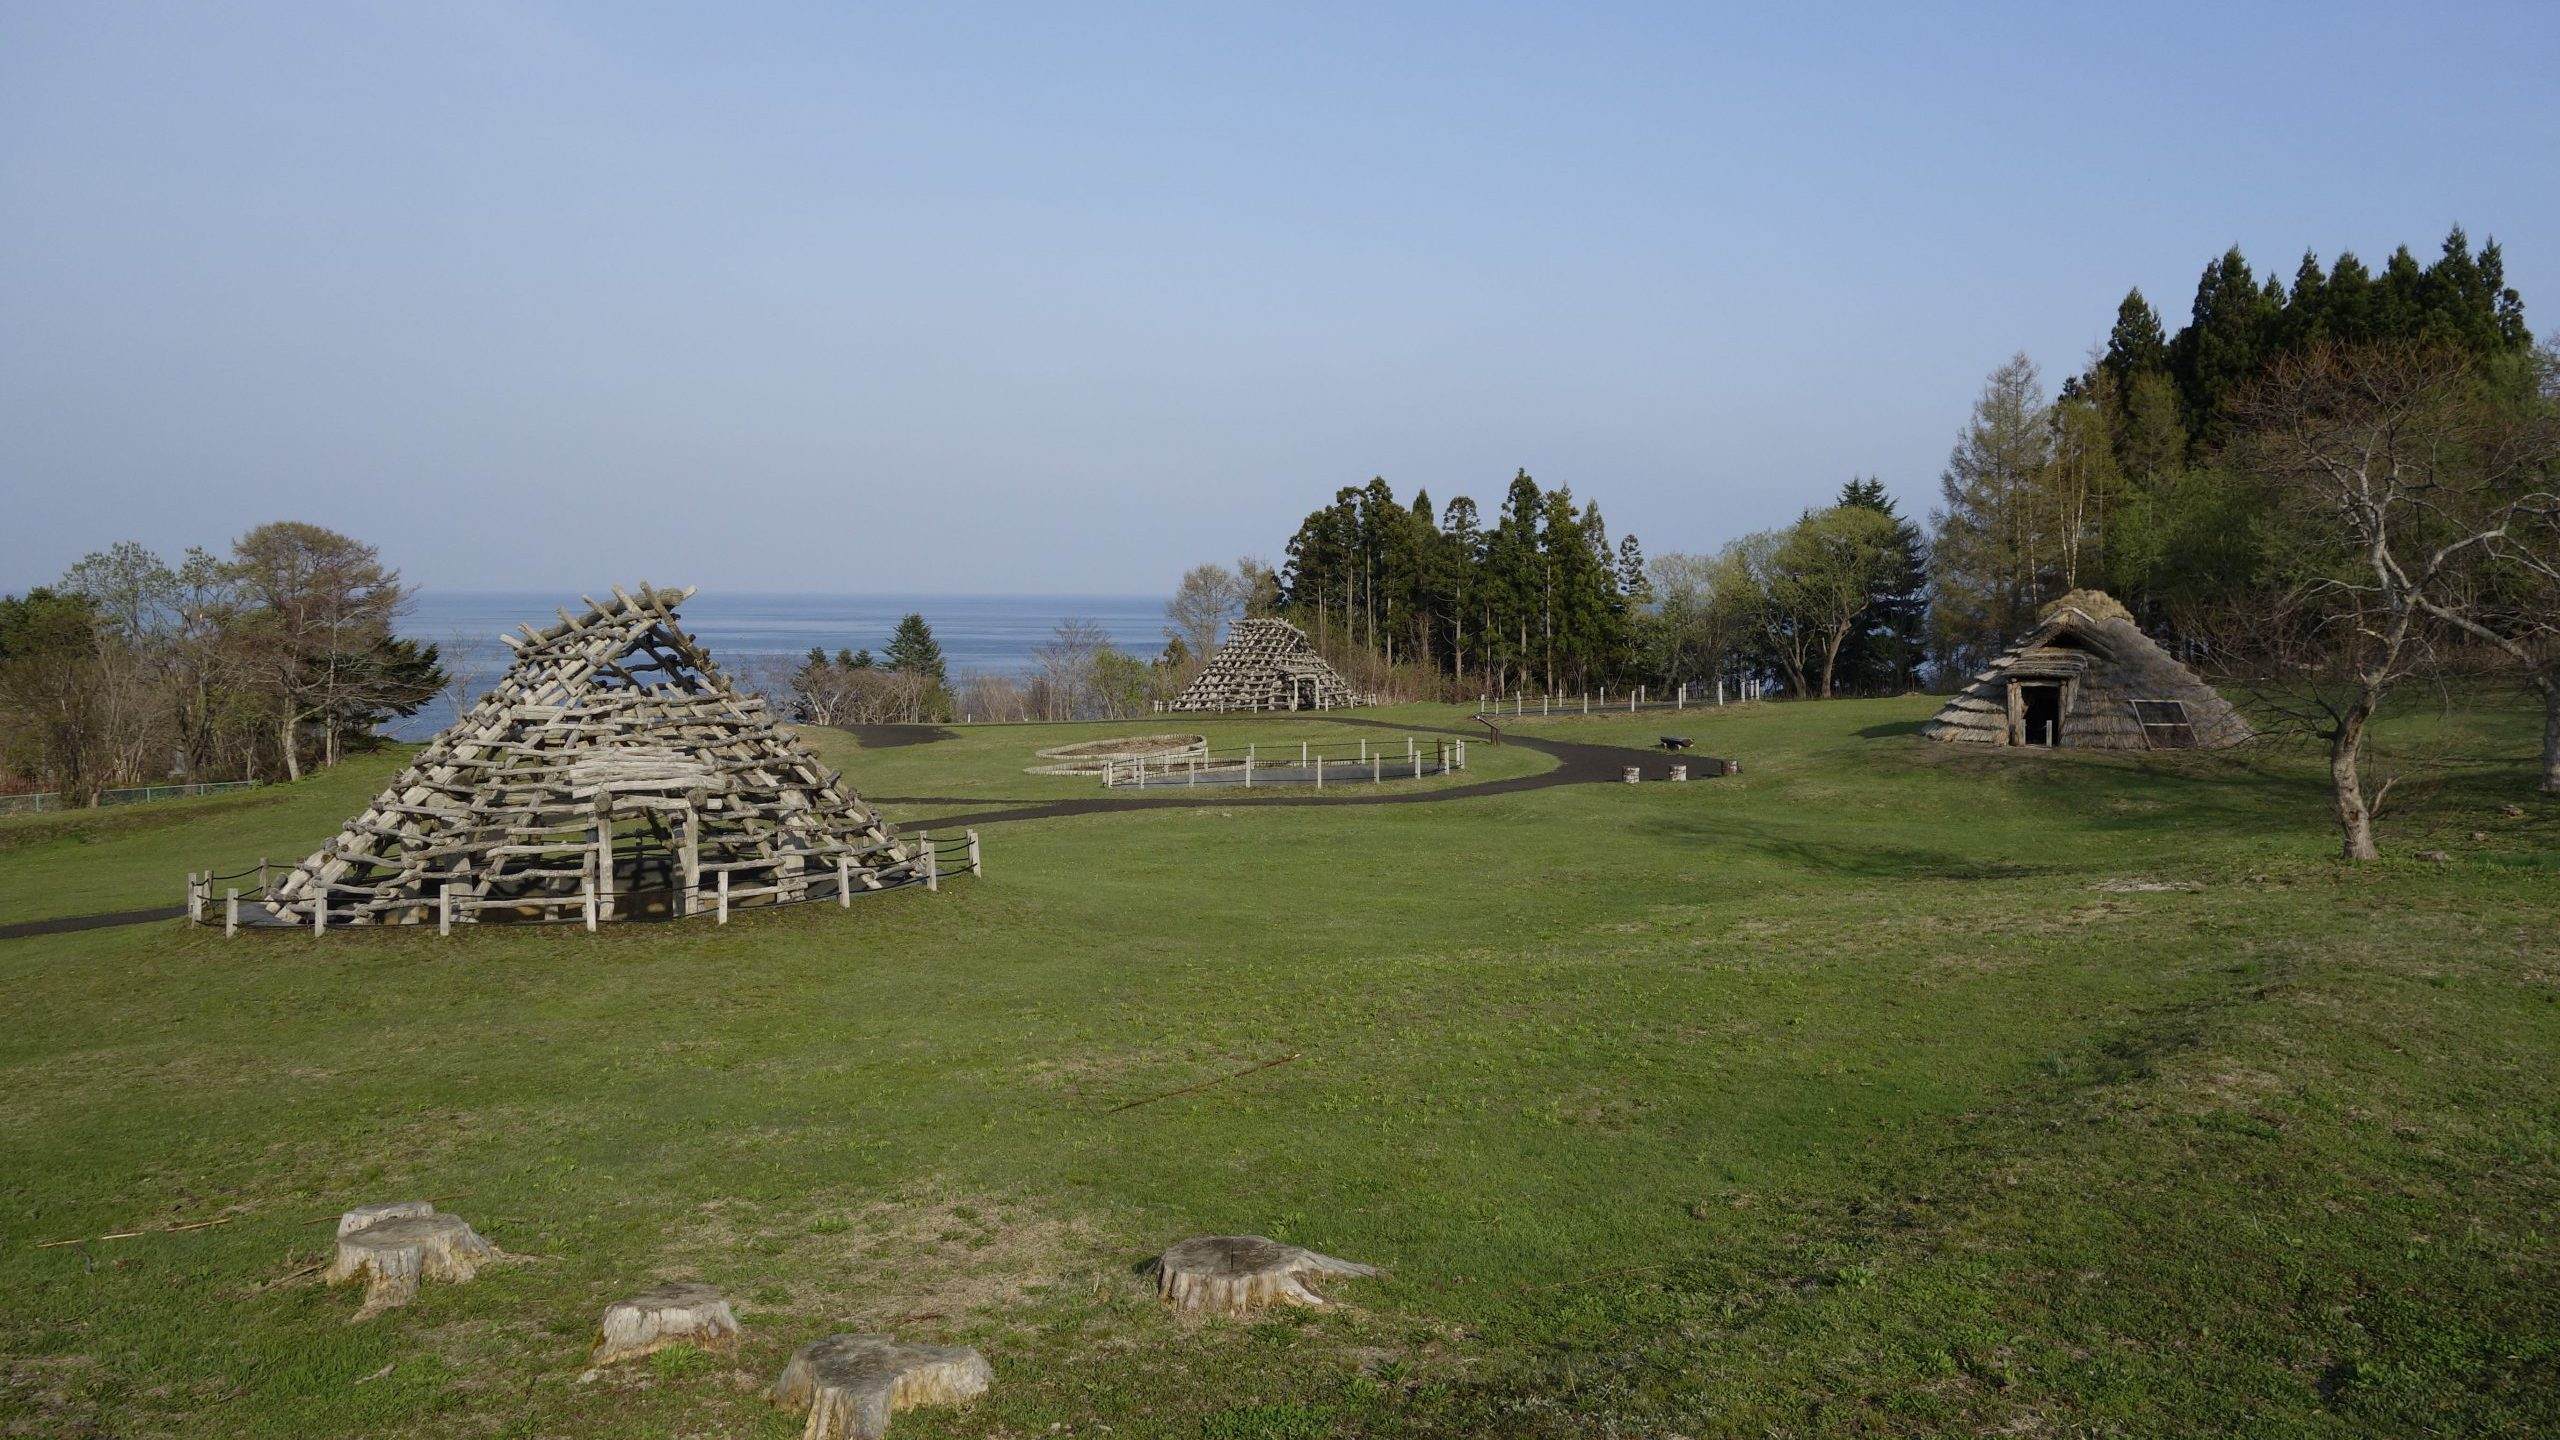 Hakodate Minamikayabe and Jomon Culture